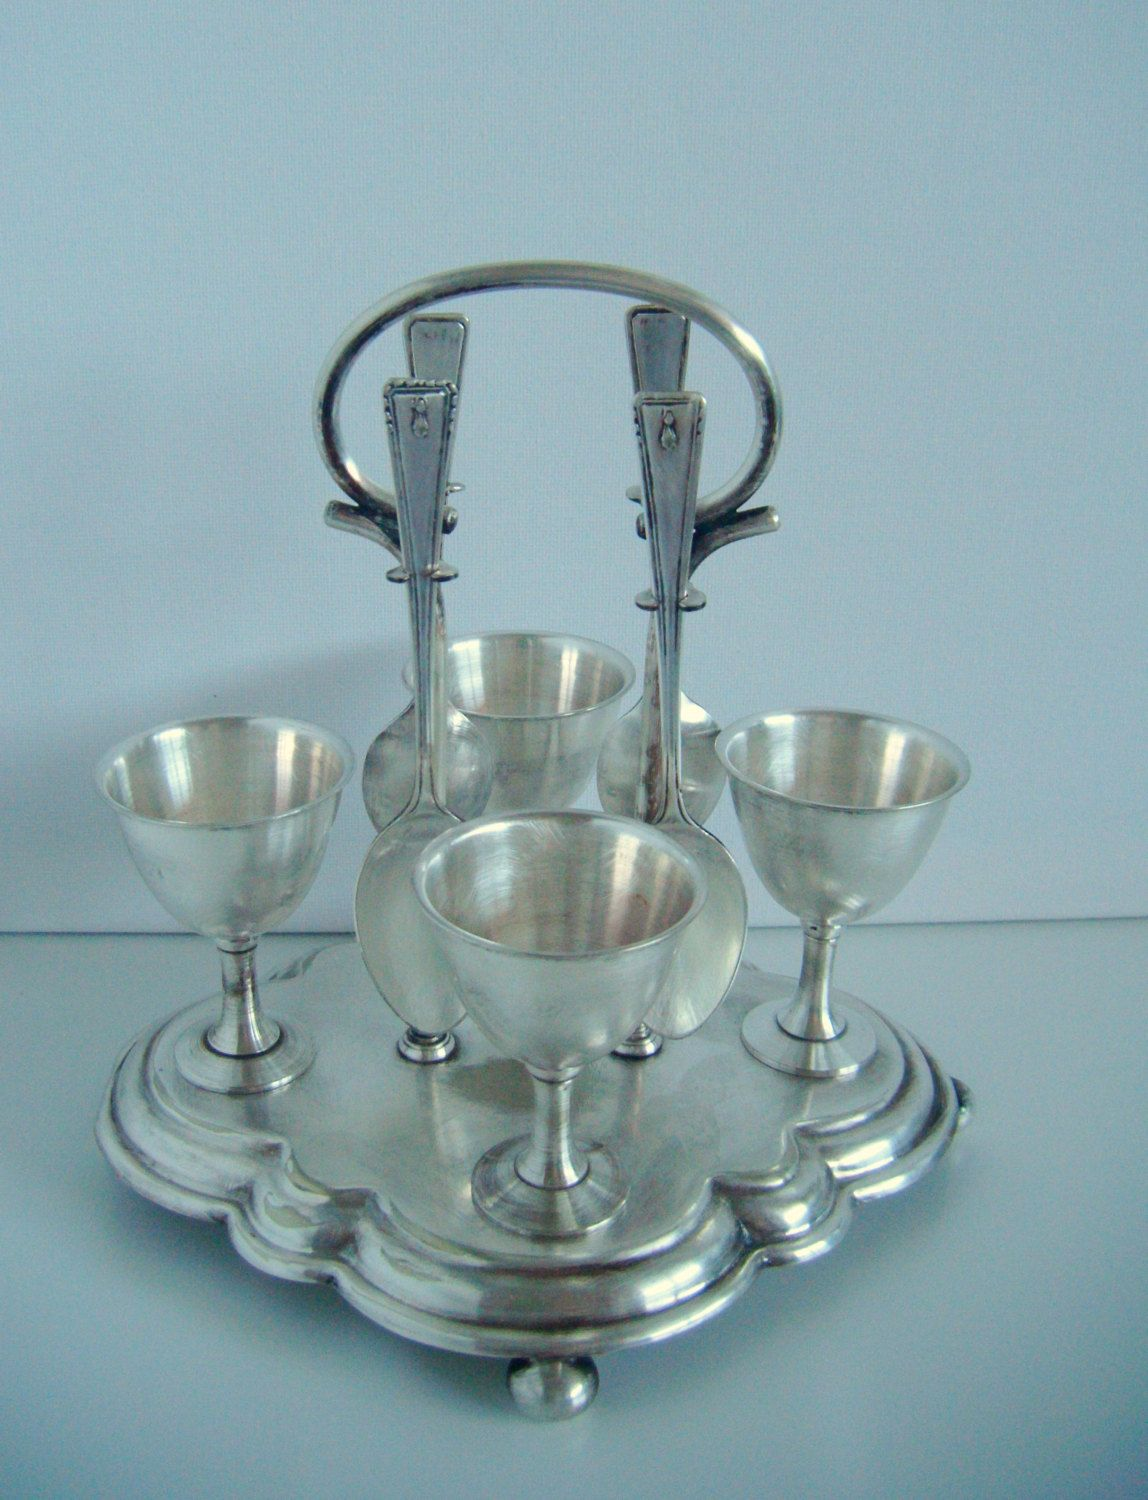 Vintage Silver Plated Egg Cup Amp Spoon Set Of 4 With Tray